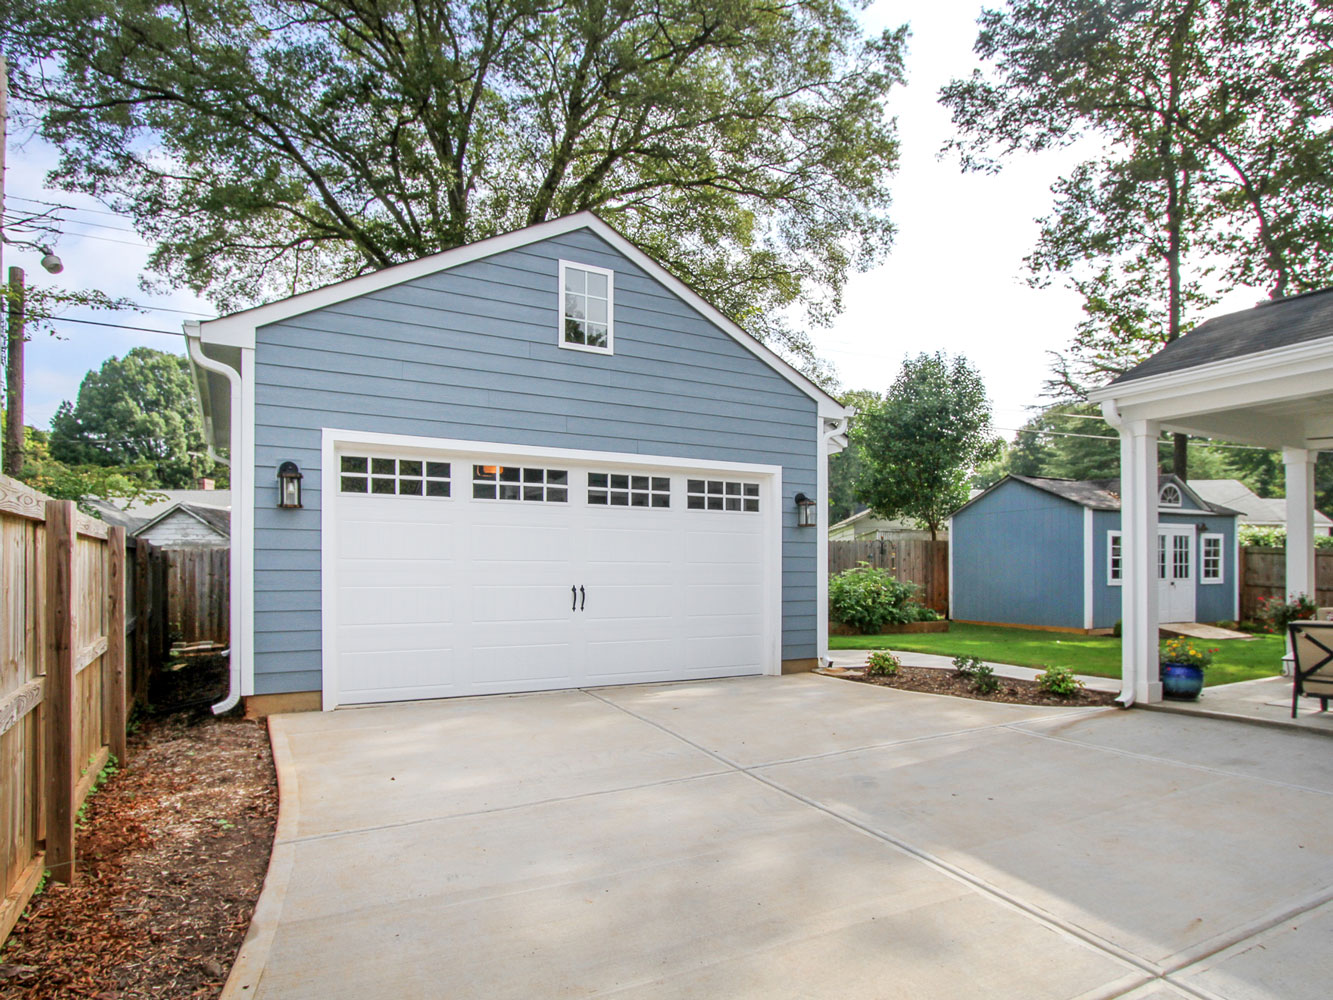 Sedgefield-Detached-Garage_6542